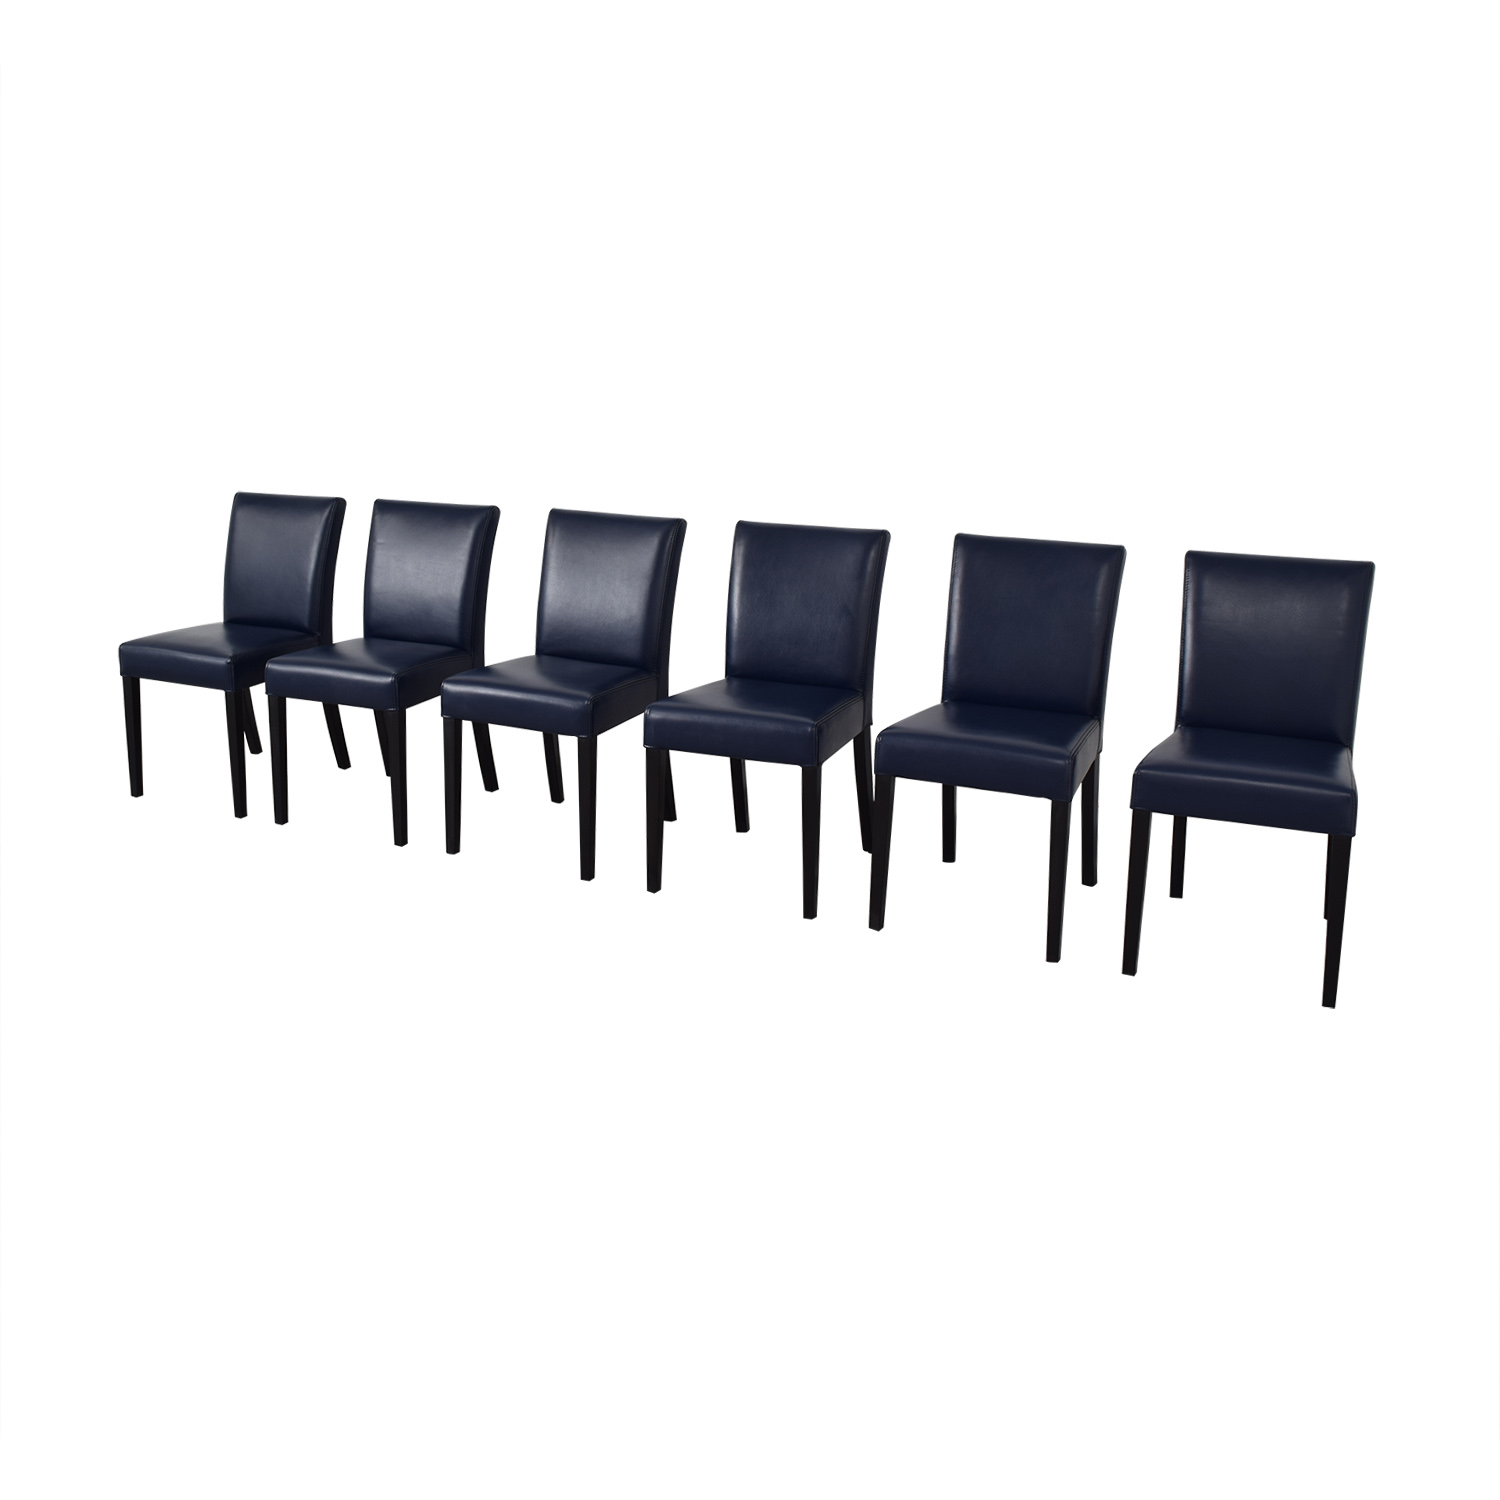 Crate & Barrel Lowe Dining Chairs / Dining Chairs